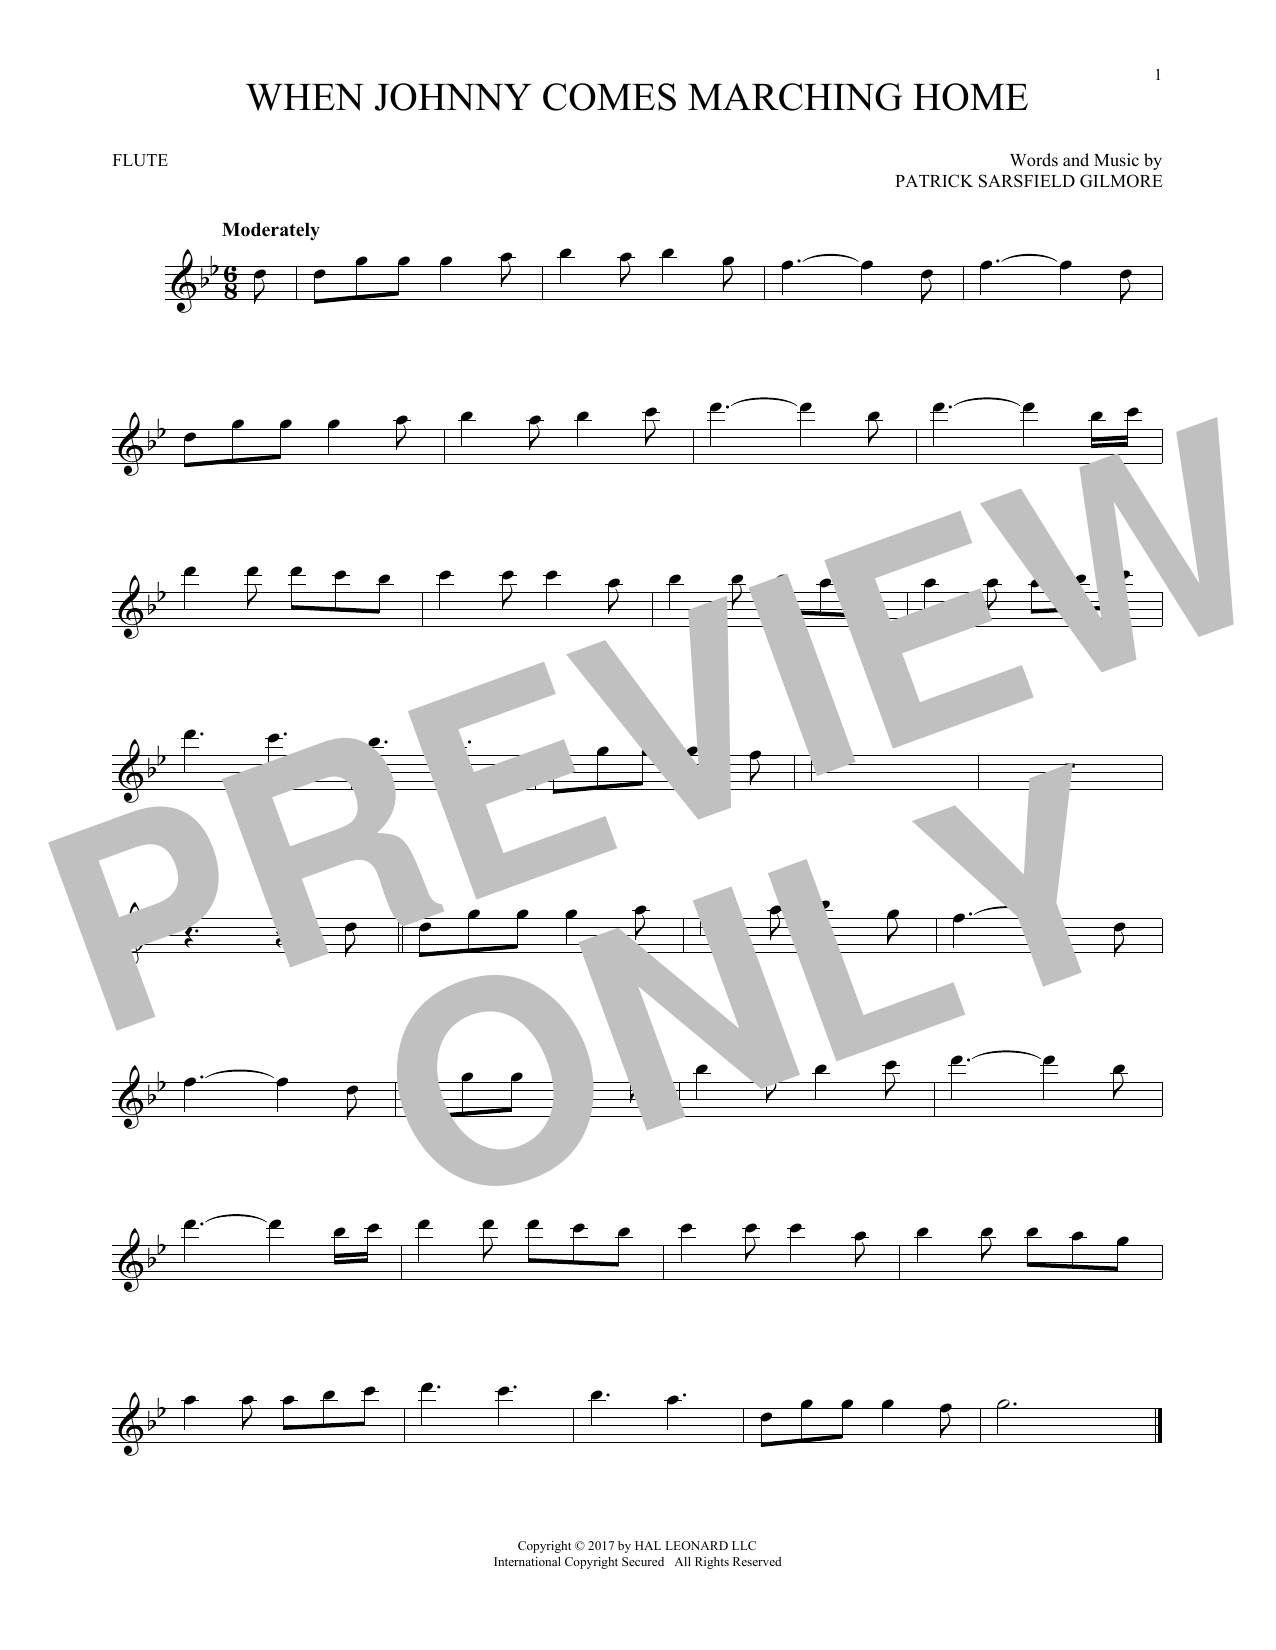 When Johnny Comes Marching Home (Flute Solo)